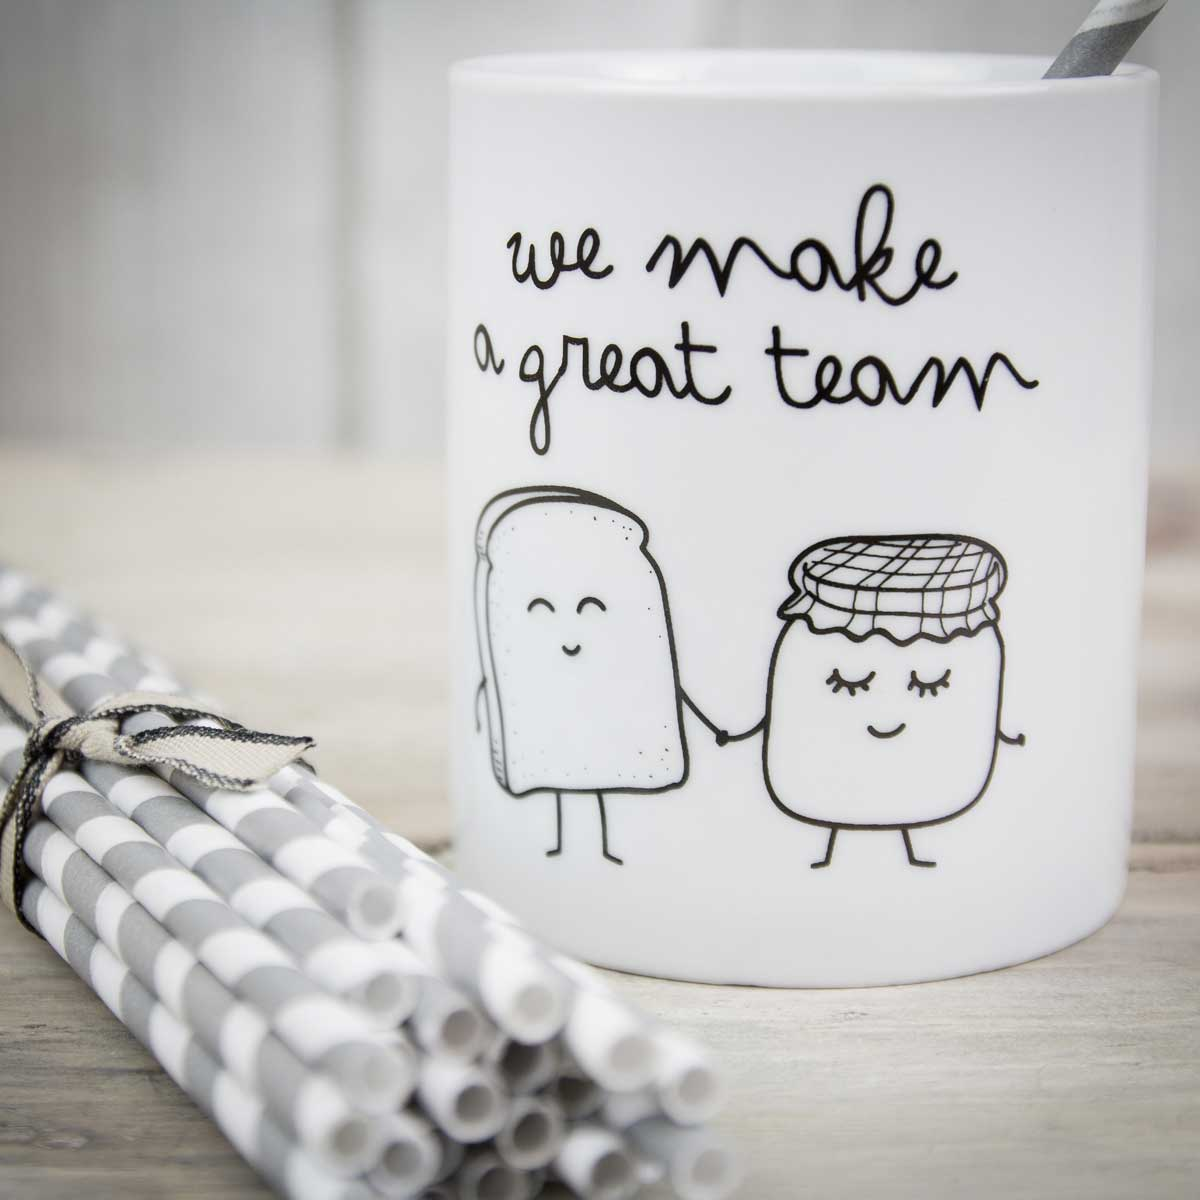 MRWONDERFUL_SEMANA-24012013_TAZA-WE-TEAM_03